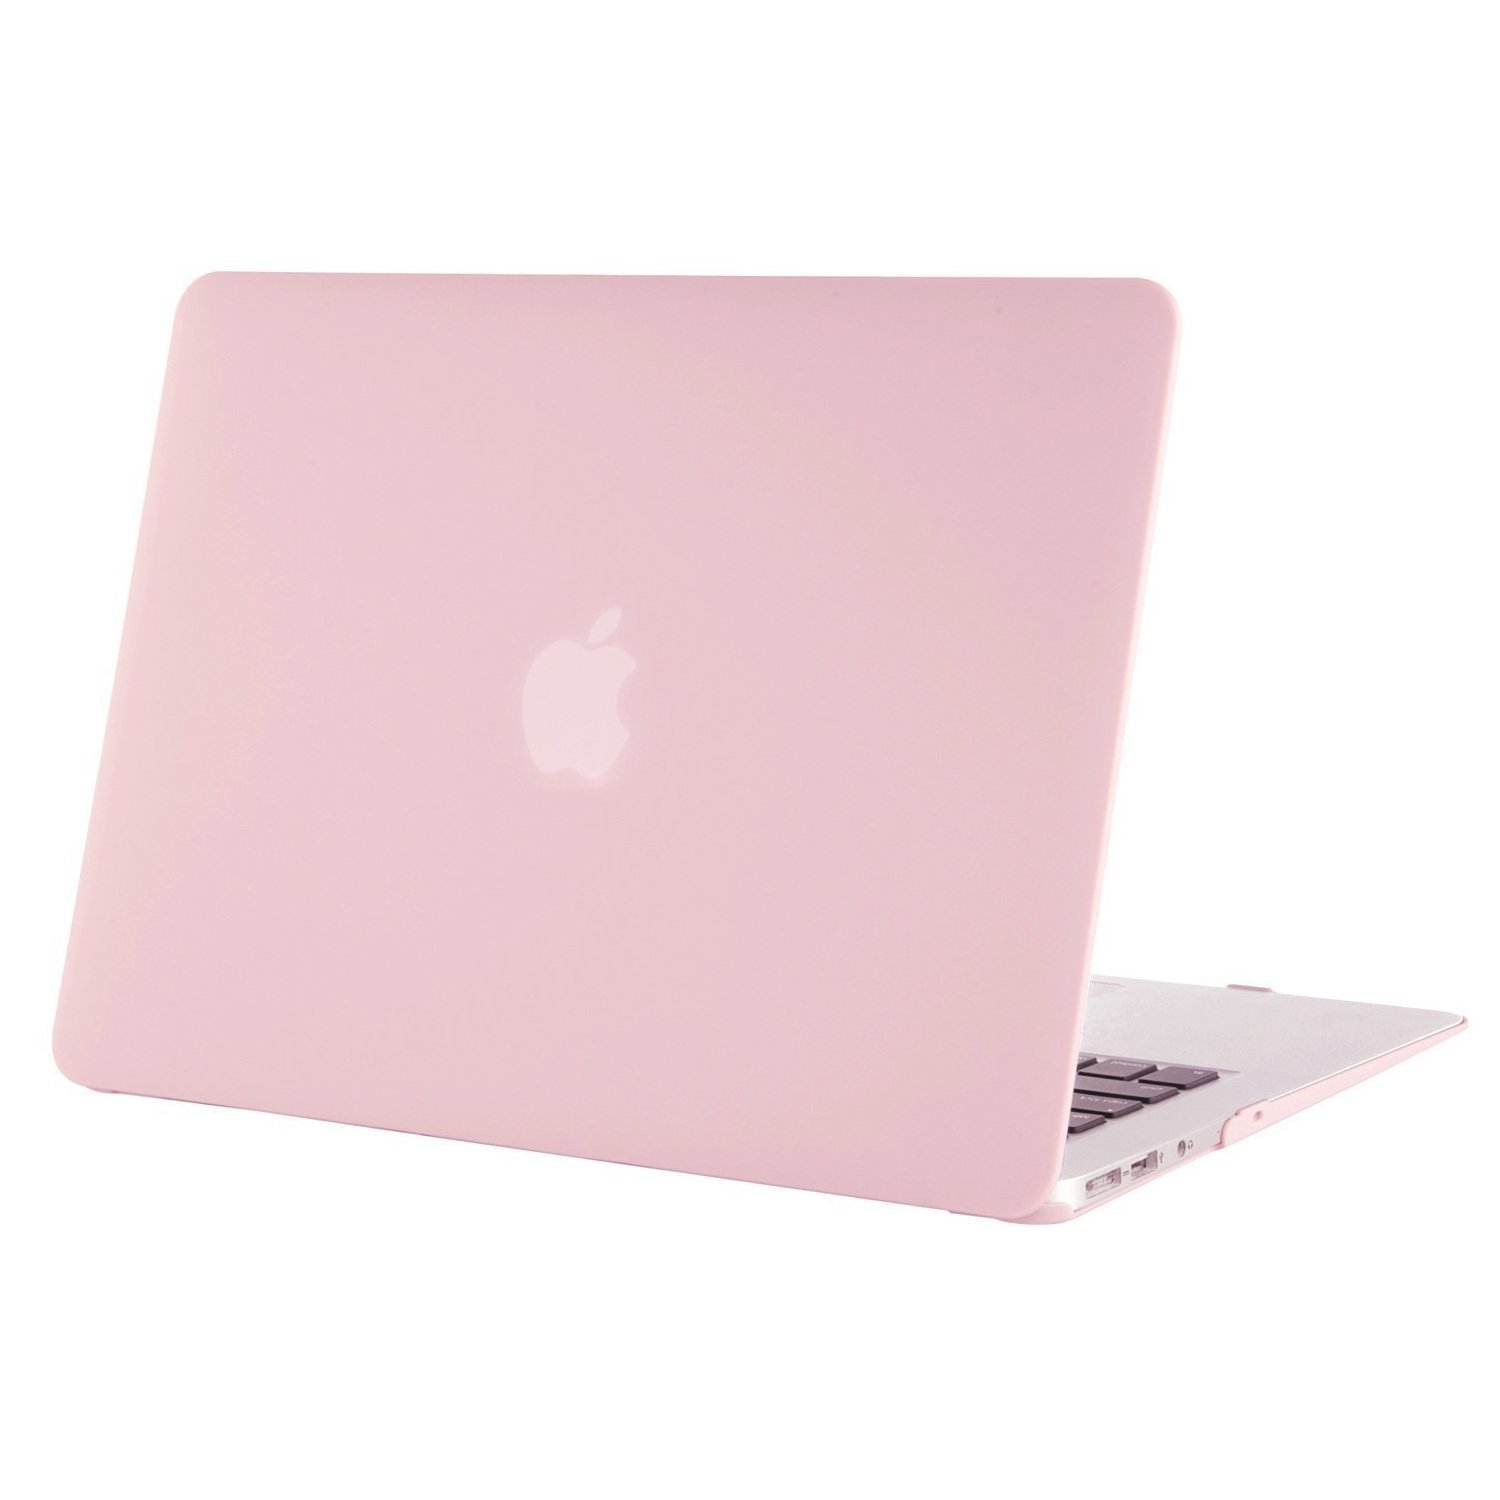 Mosiso Plastic Hard Case Cover for MacBook Air 13 Inch (Models: A1369 and A1466), Airy Blue 13MBA_R-Airy-Blue